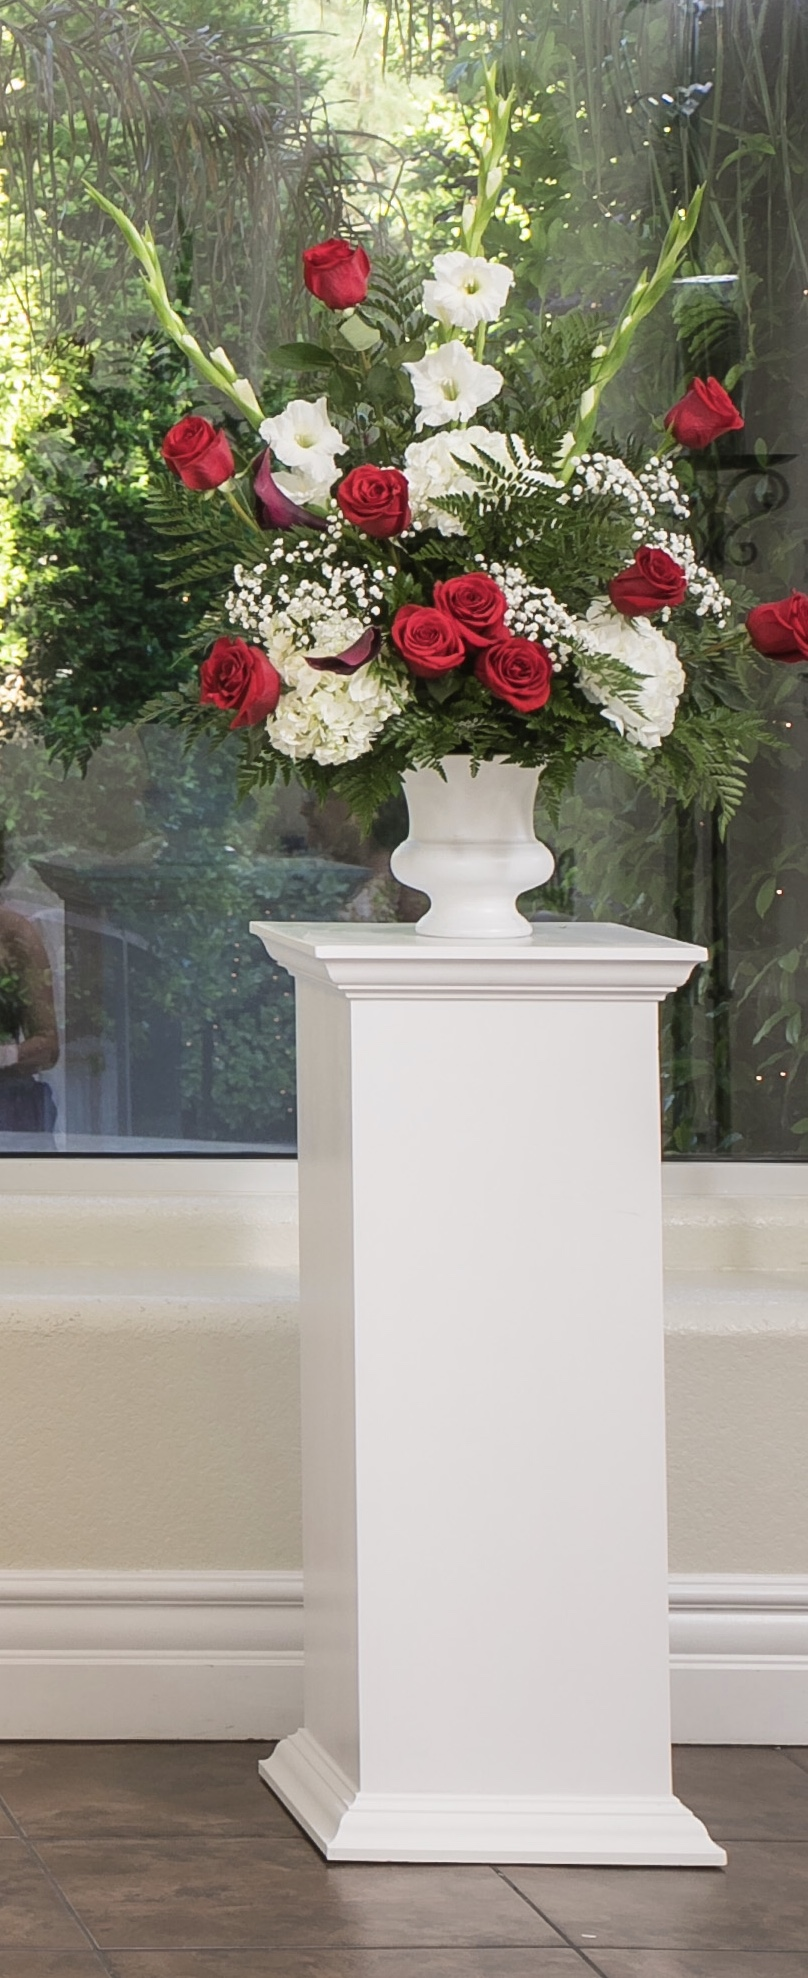 Two Pillars For Altar And/or Reception Flowers